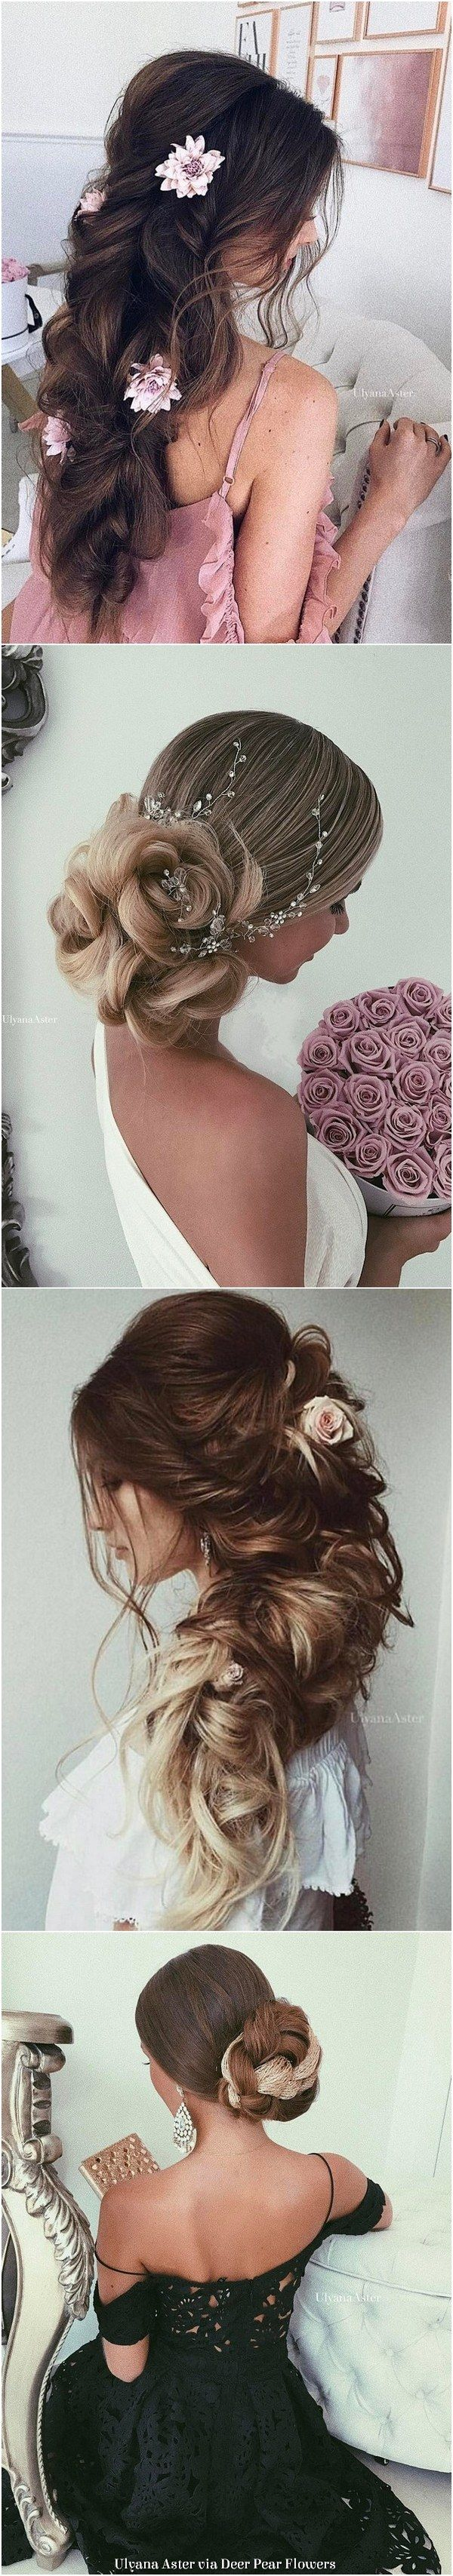 Ulyana Aster Long Wedding Hairstyles Inspiration - www.ulyanaaster.com | Deer Pe...